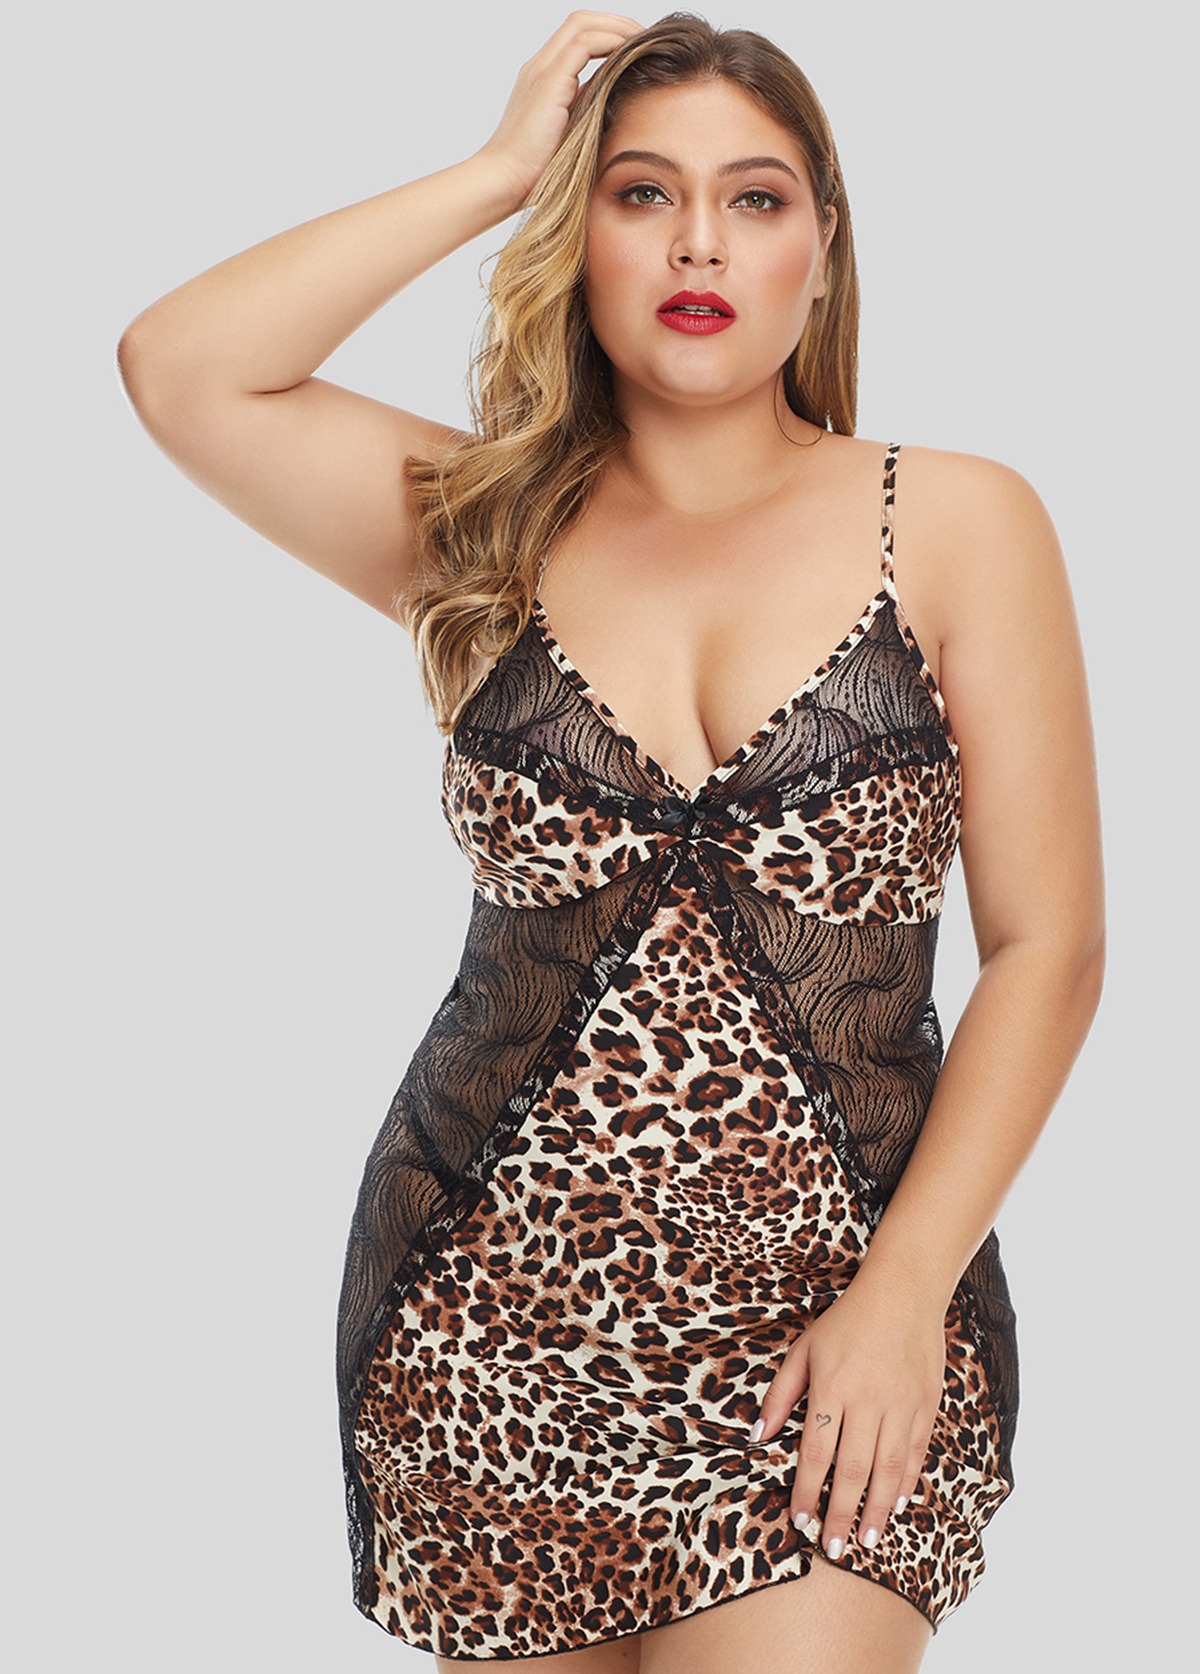 Spaghetti Strap Plus Size V Neck Camisole Top and Panty